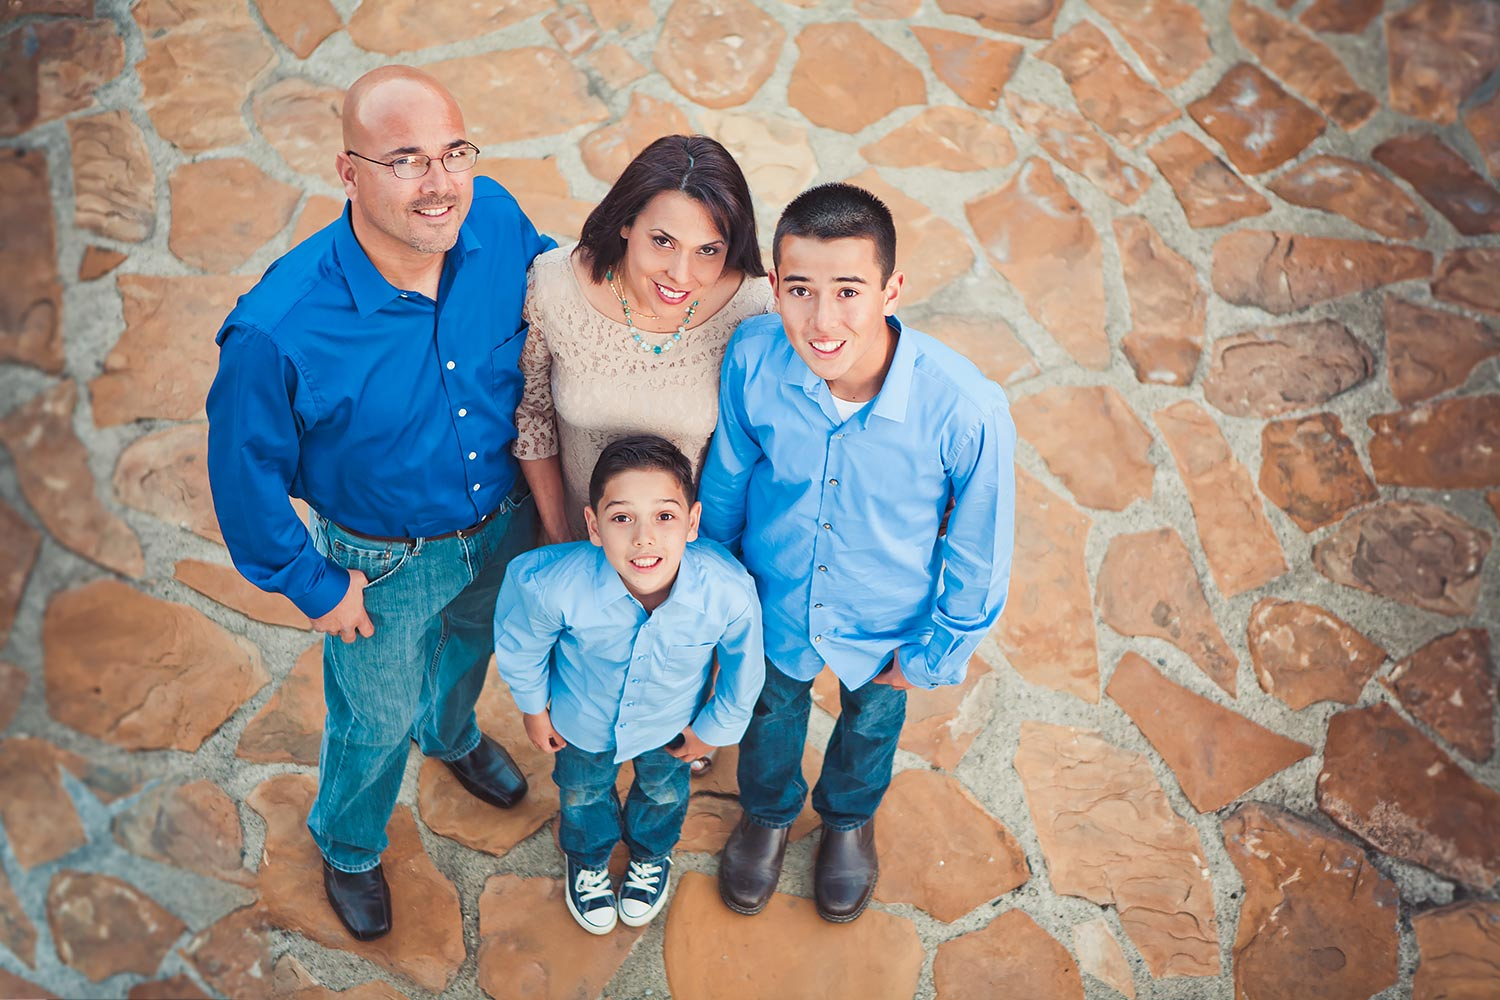 Hillcrest Park Family Portraits | Stephen Grant Photography